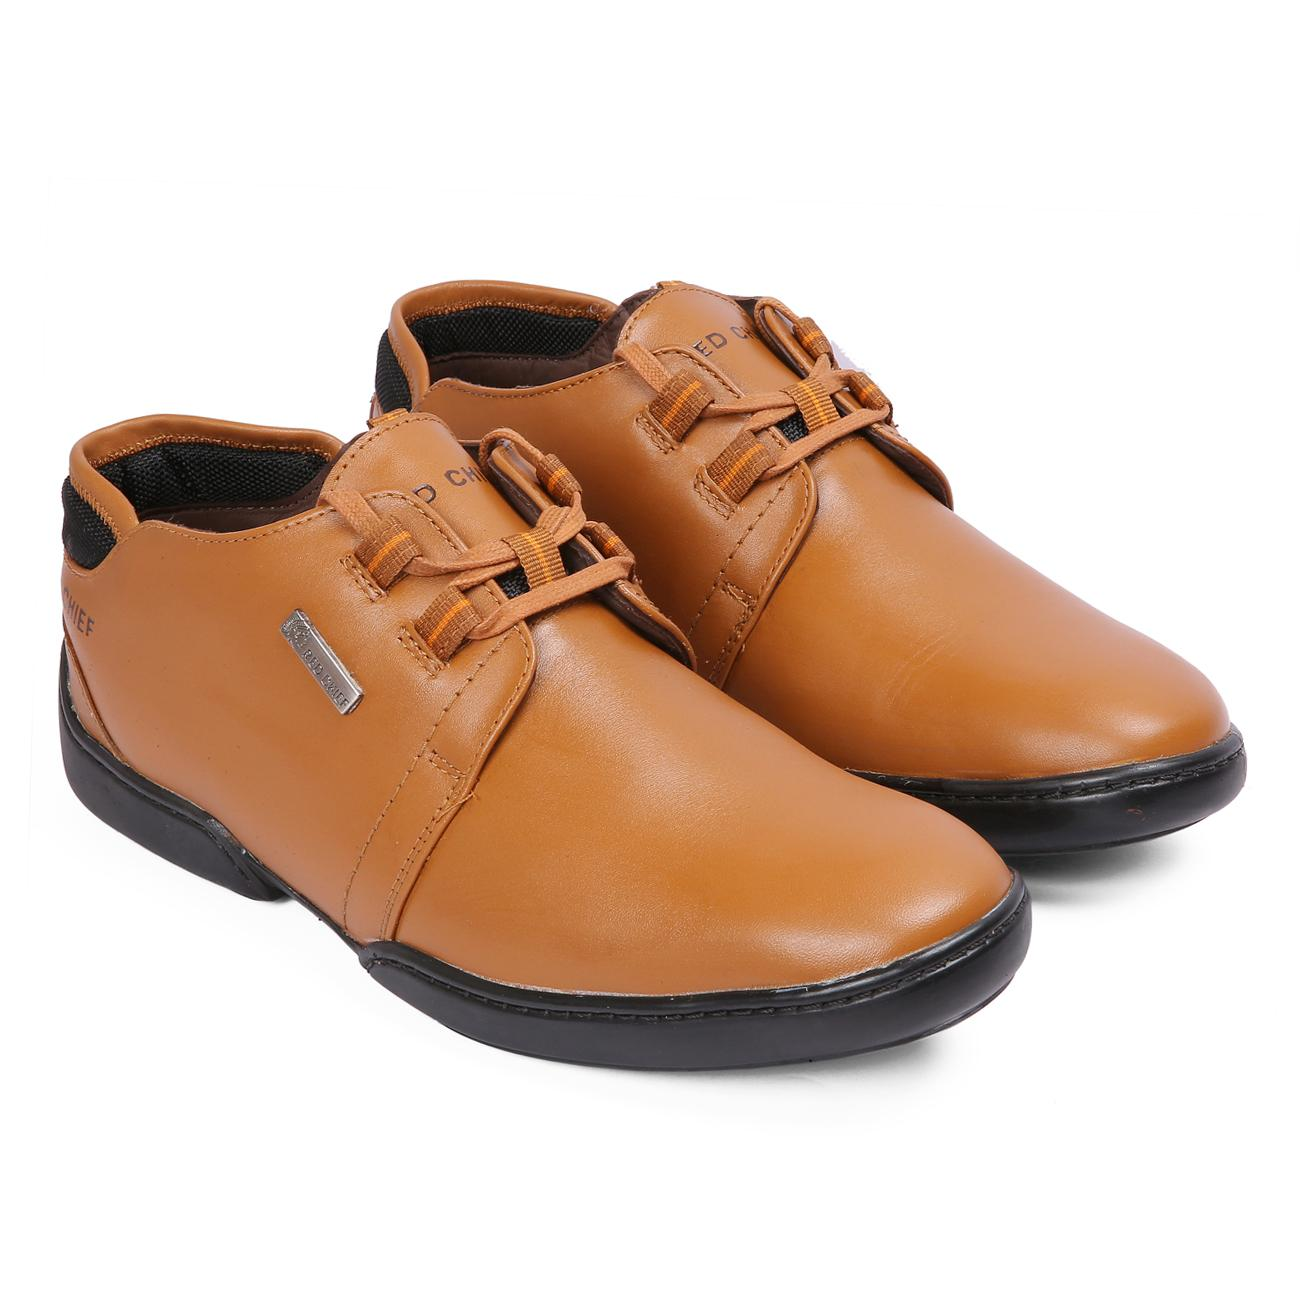 n tan original casual leather shoes